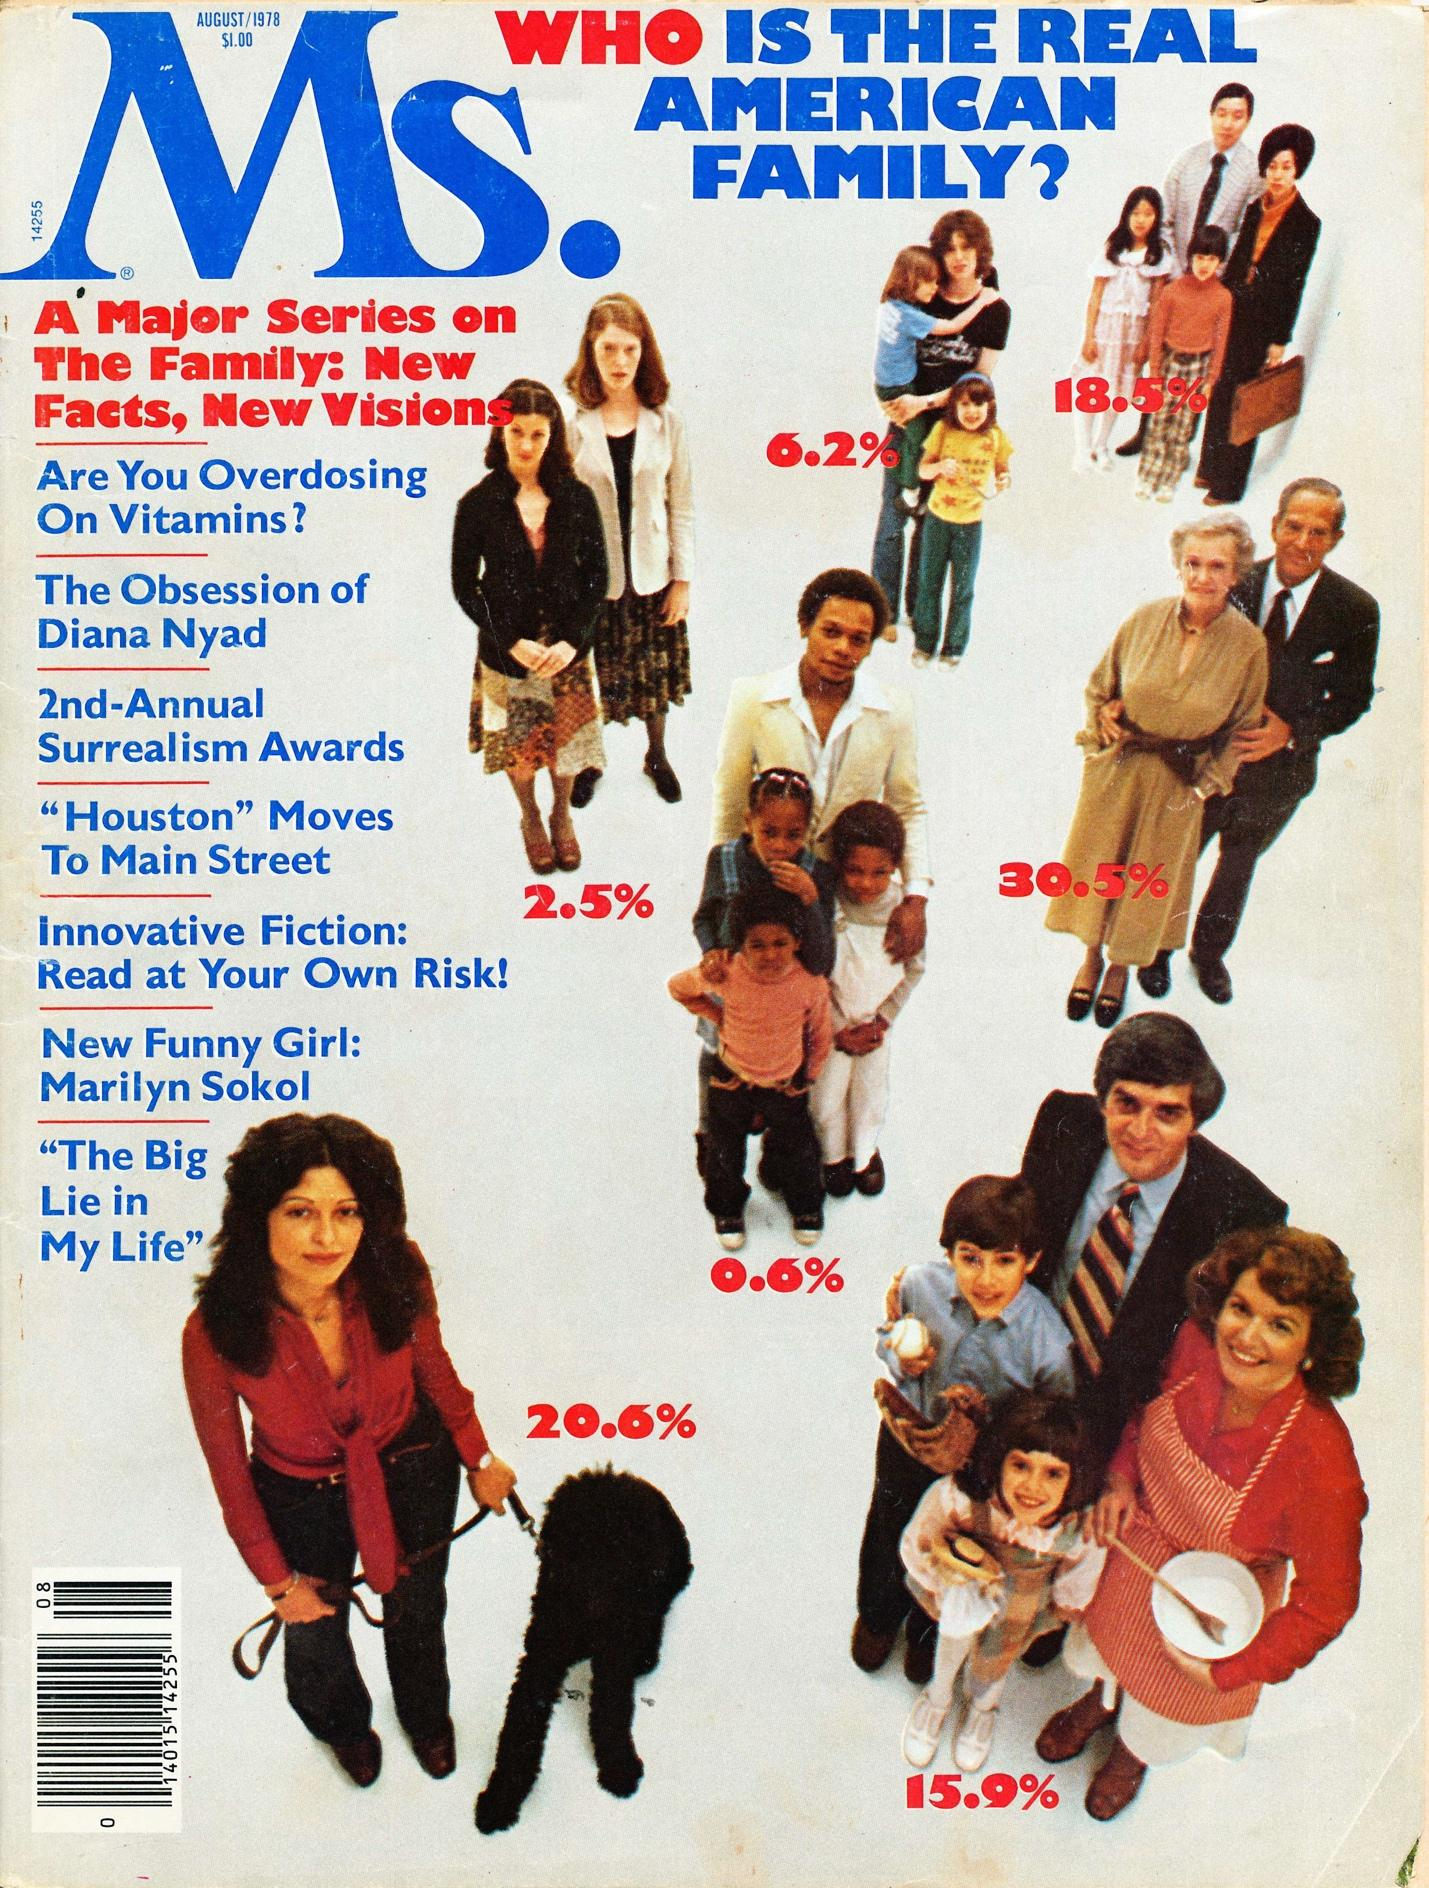 The Ms. Magazine cover for August 1978 provided inspiration for the spring 1979 architectural design studio taught by Susana Torre at Syracuse University. The program called for not only a greater variety of spatial variety in house units, but also shared space for day care, elderly care, common kitchens, and laundries.